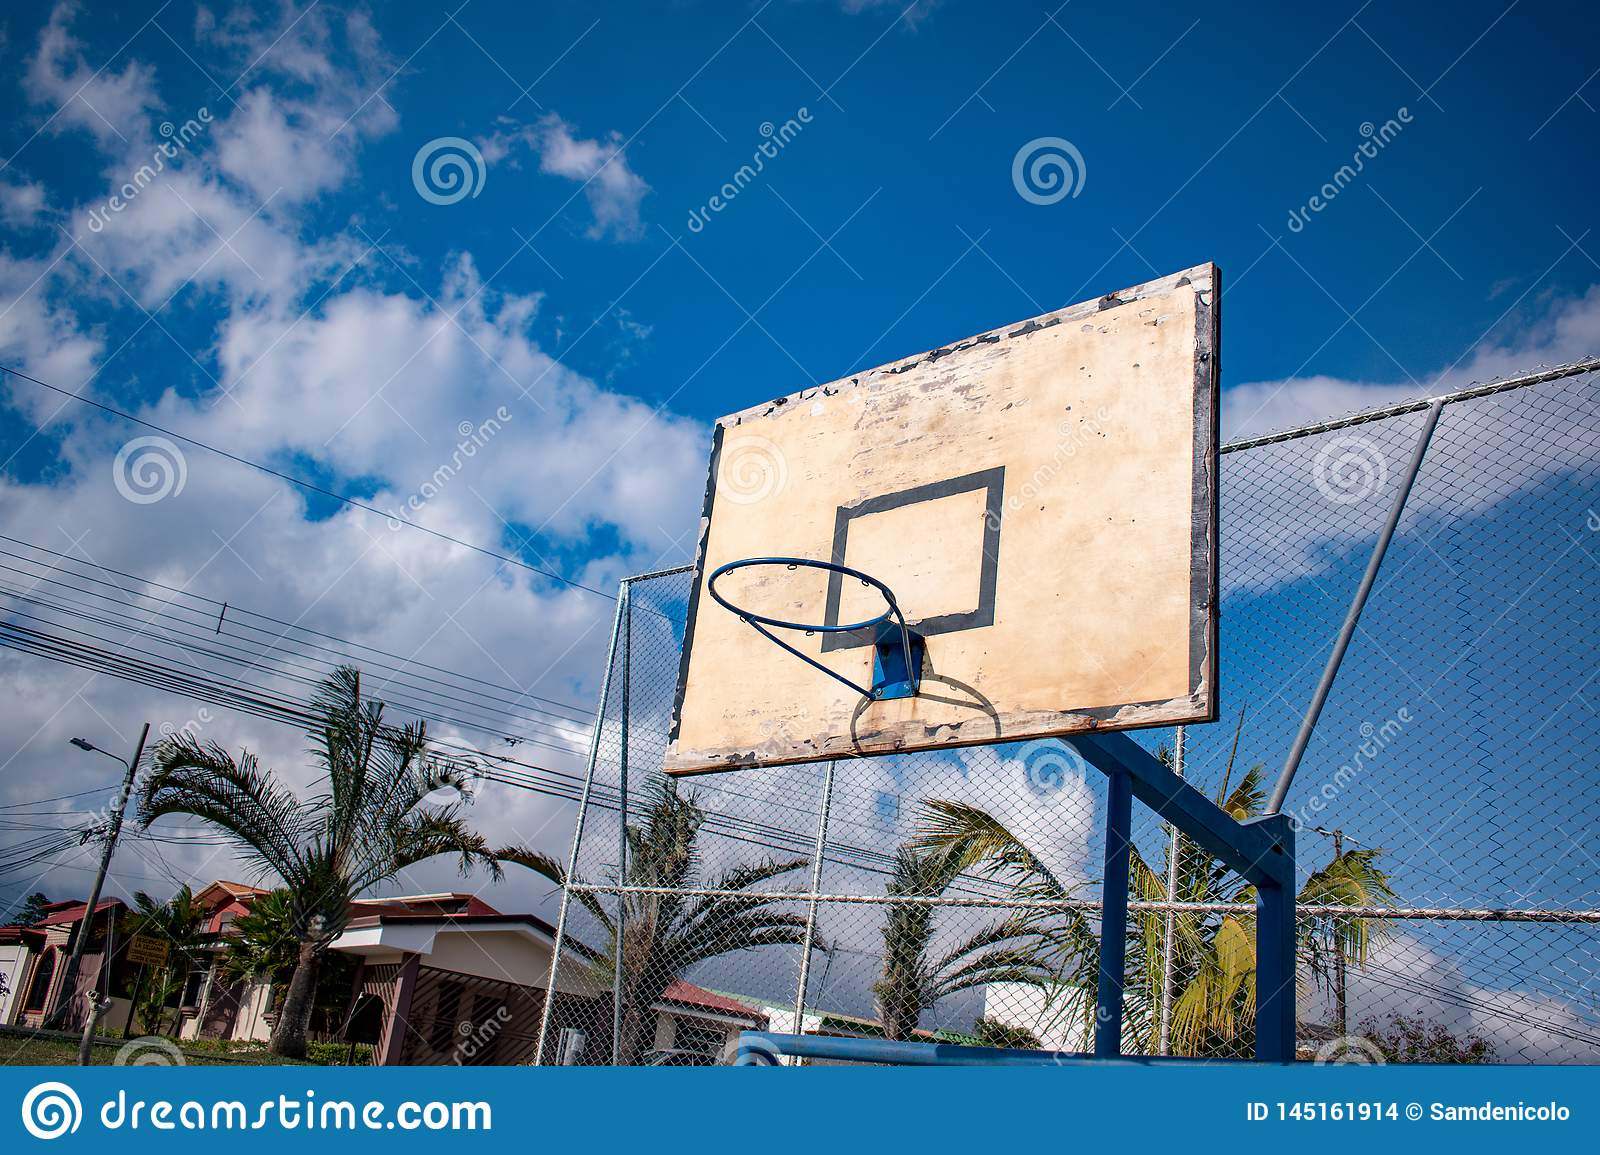 Basketball court for play with